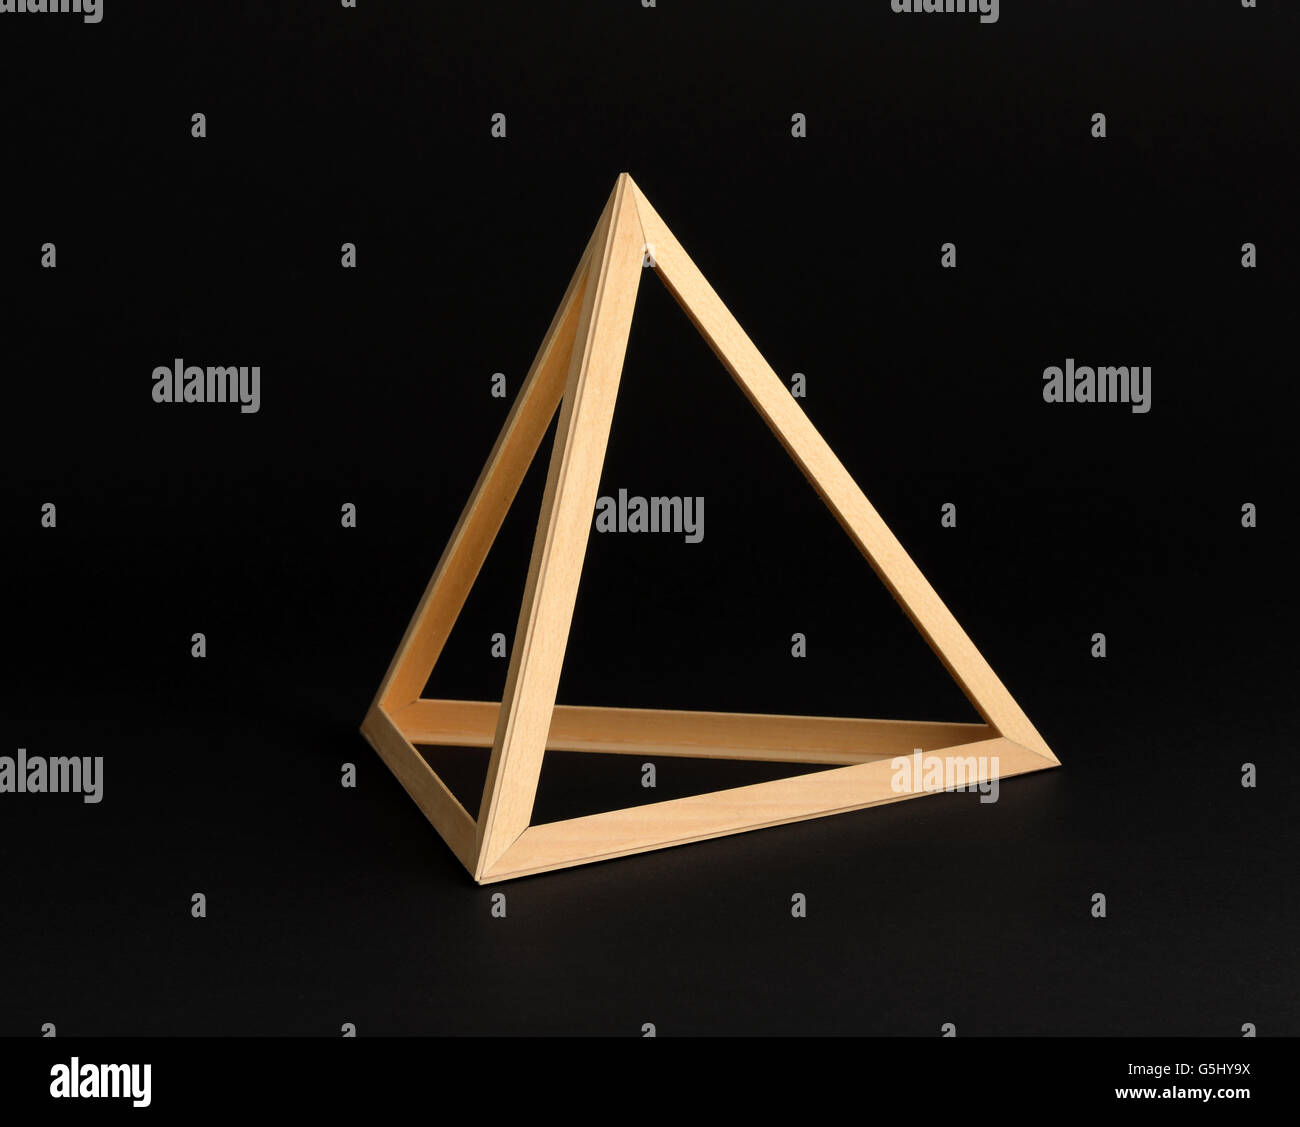 Three dimensional wooden triangle in the form of an open sided frame - Stock Image